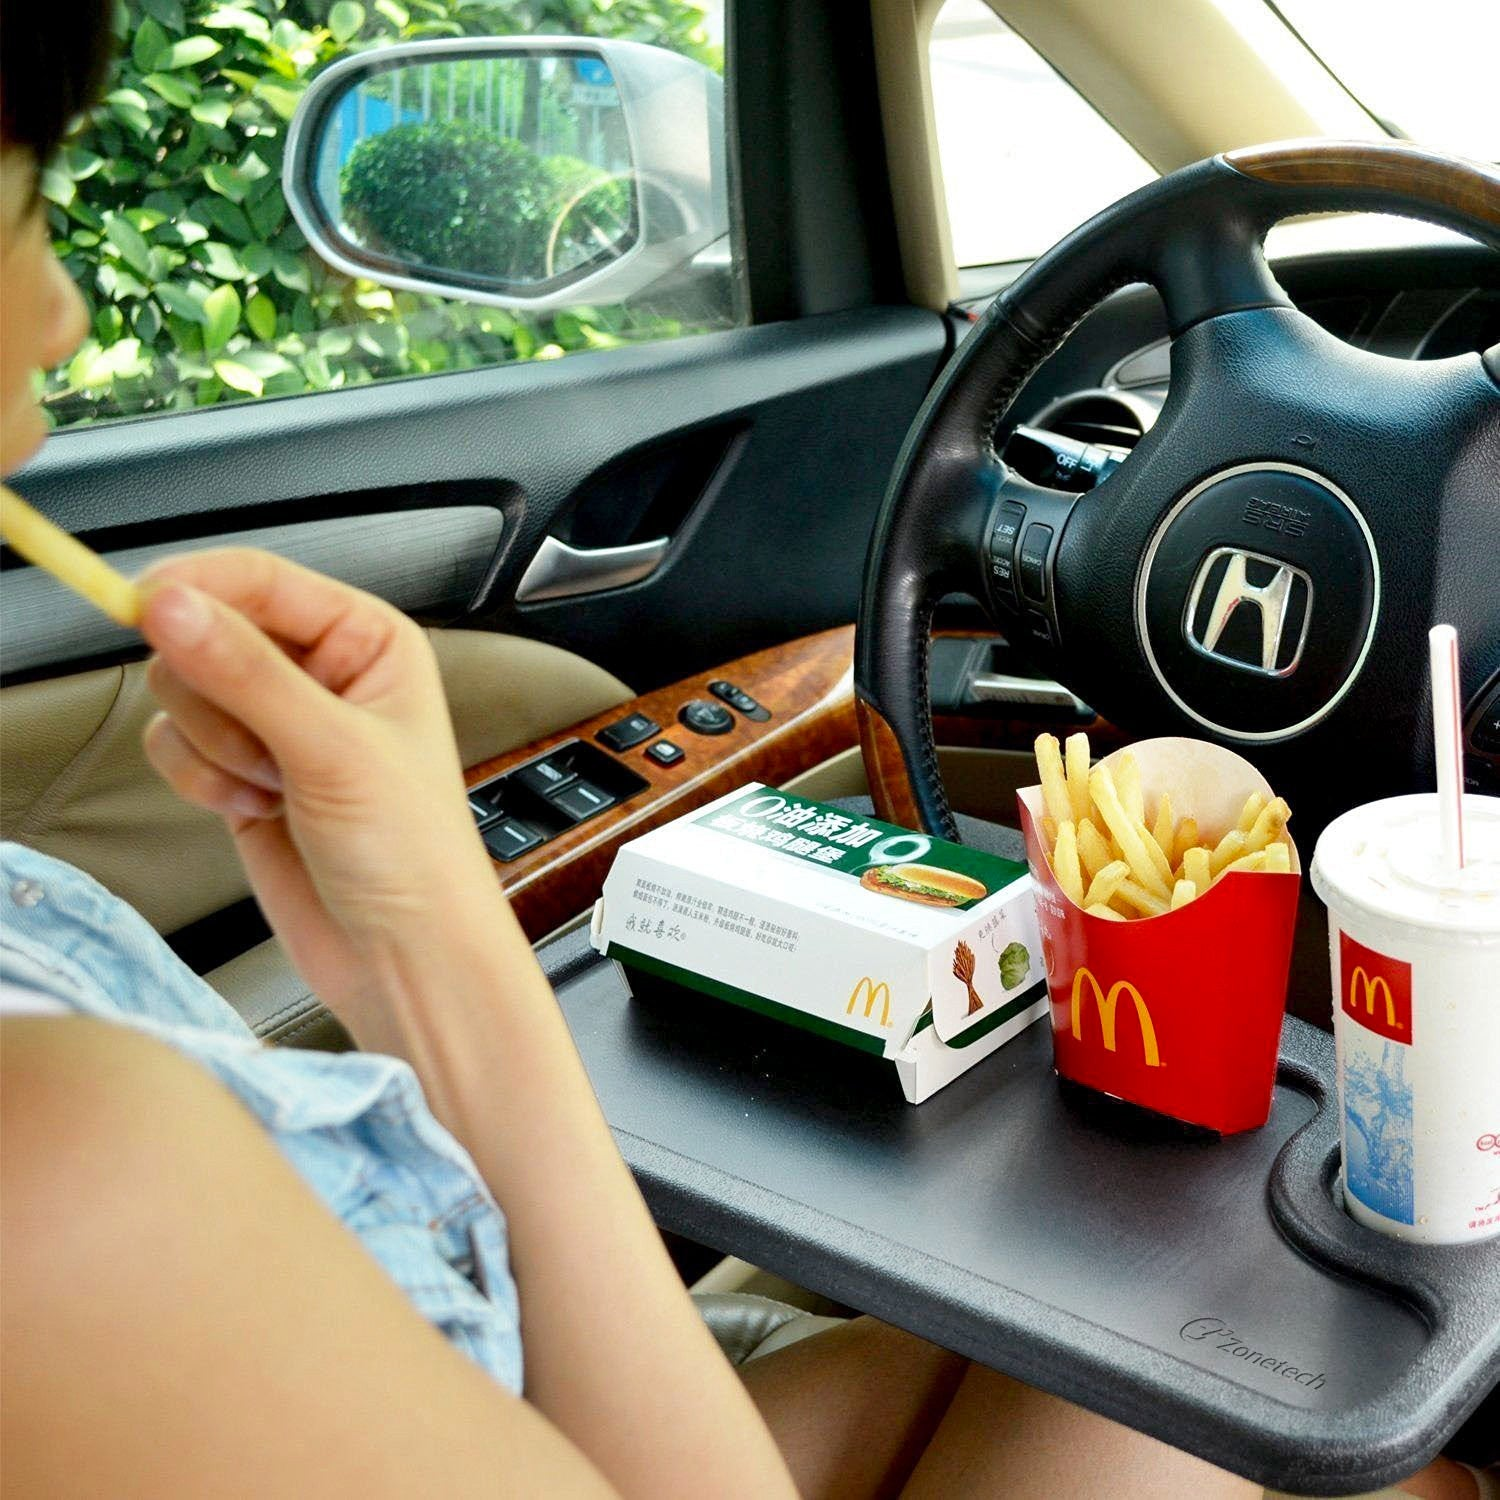 GOSO Steering Wheel Table Tray Desk For Eating Drinking Working Writing Laptop And Tablet In Car